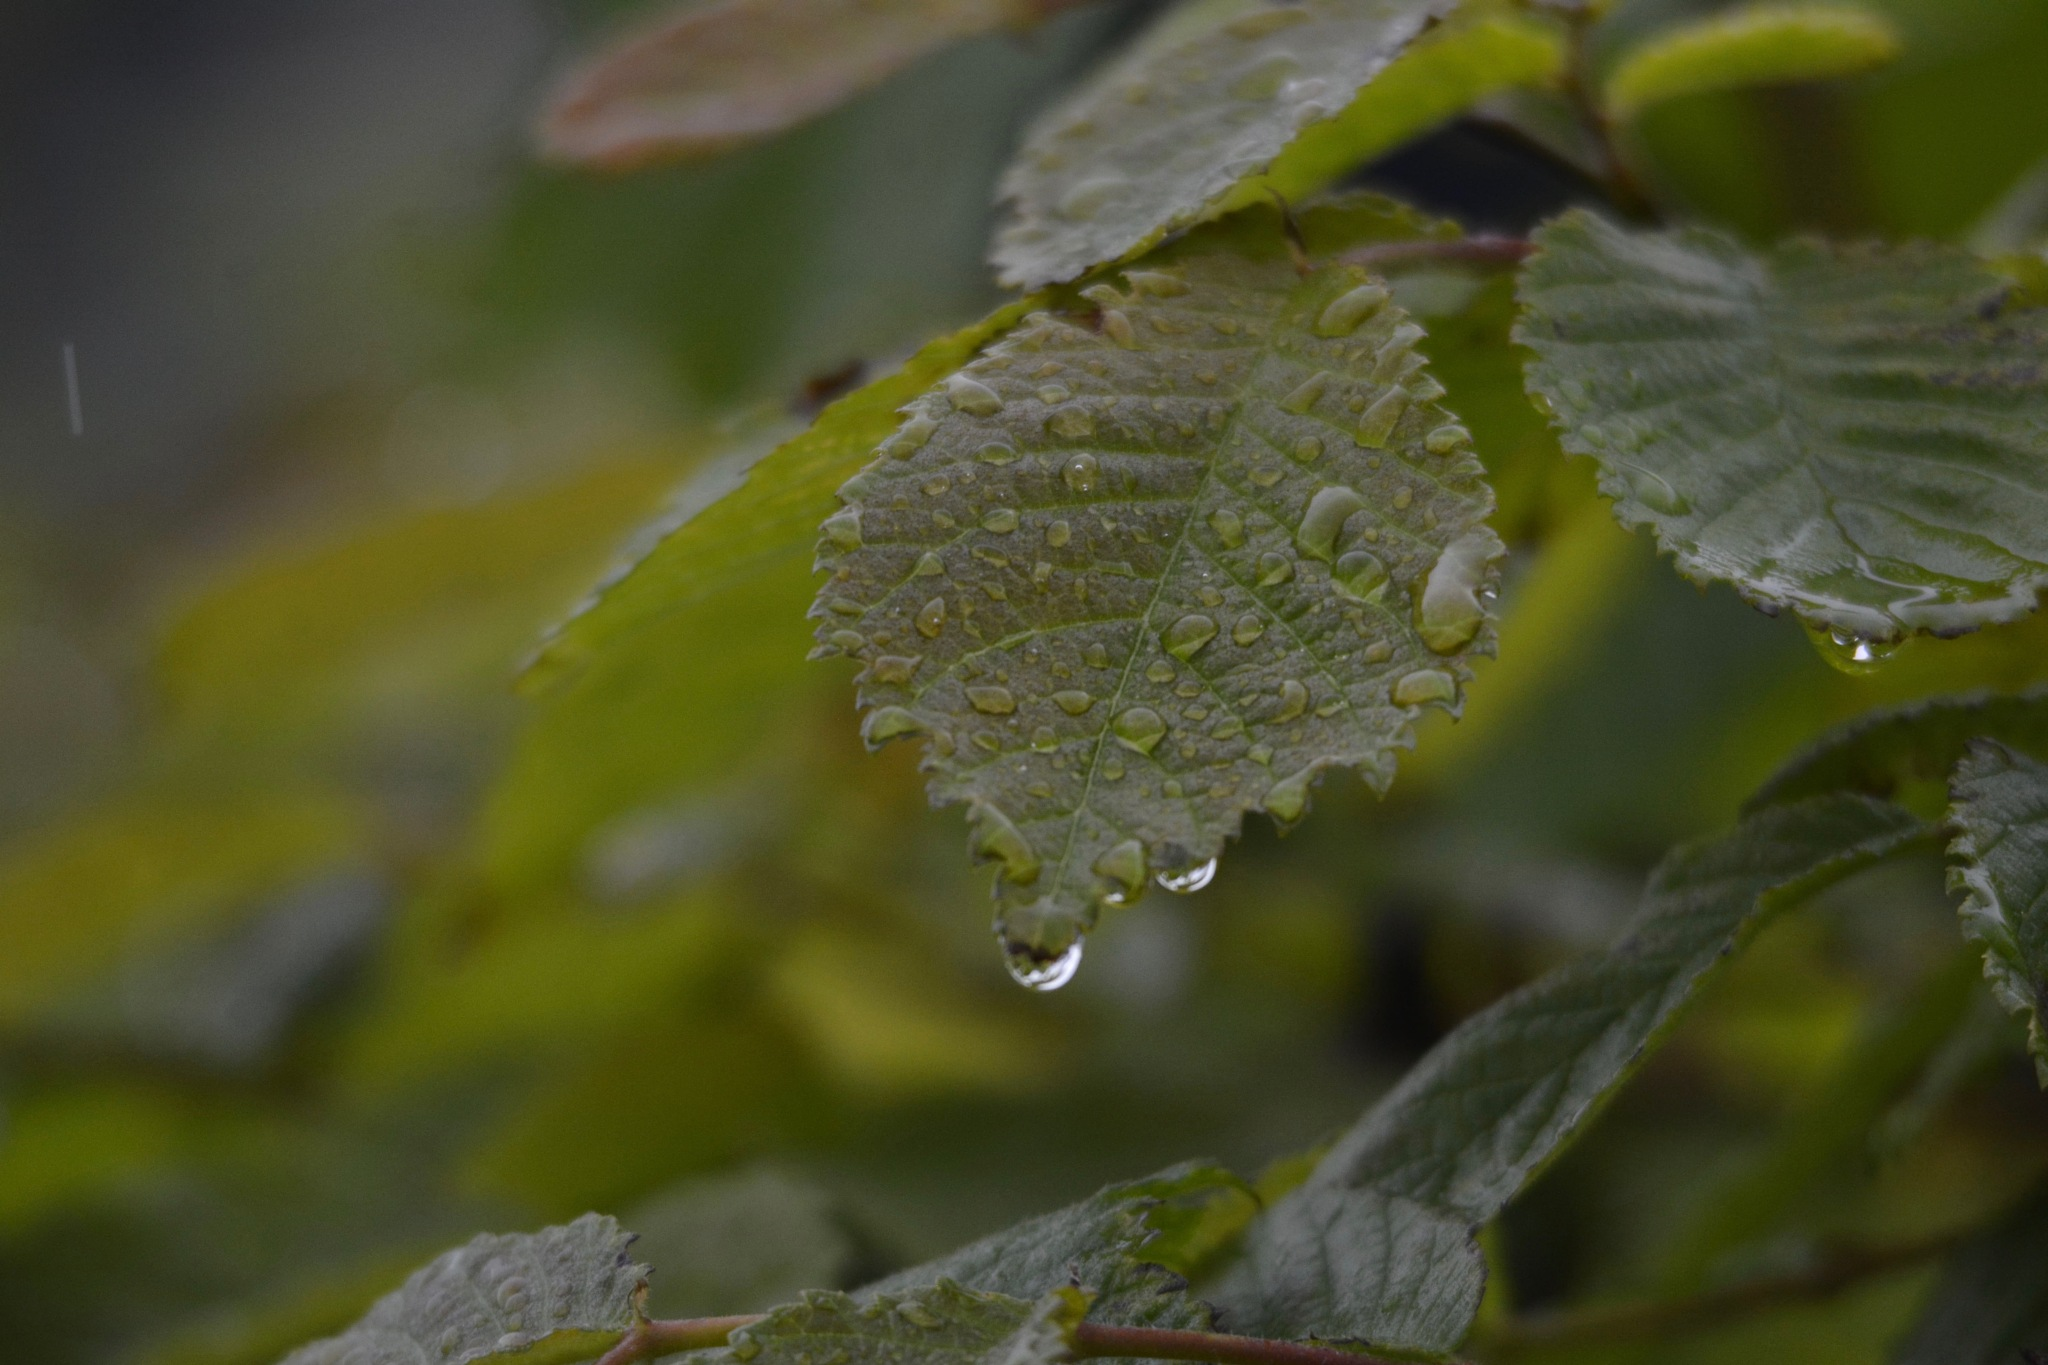 Leaves with drops 1.006 by Lars-Toralf Utnes Storstrand